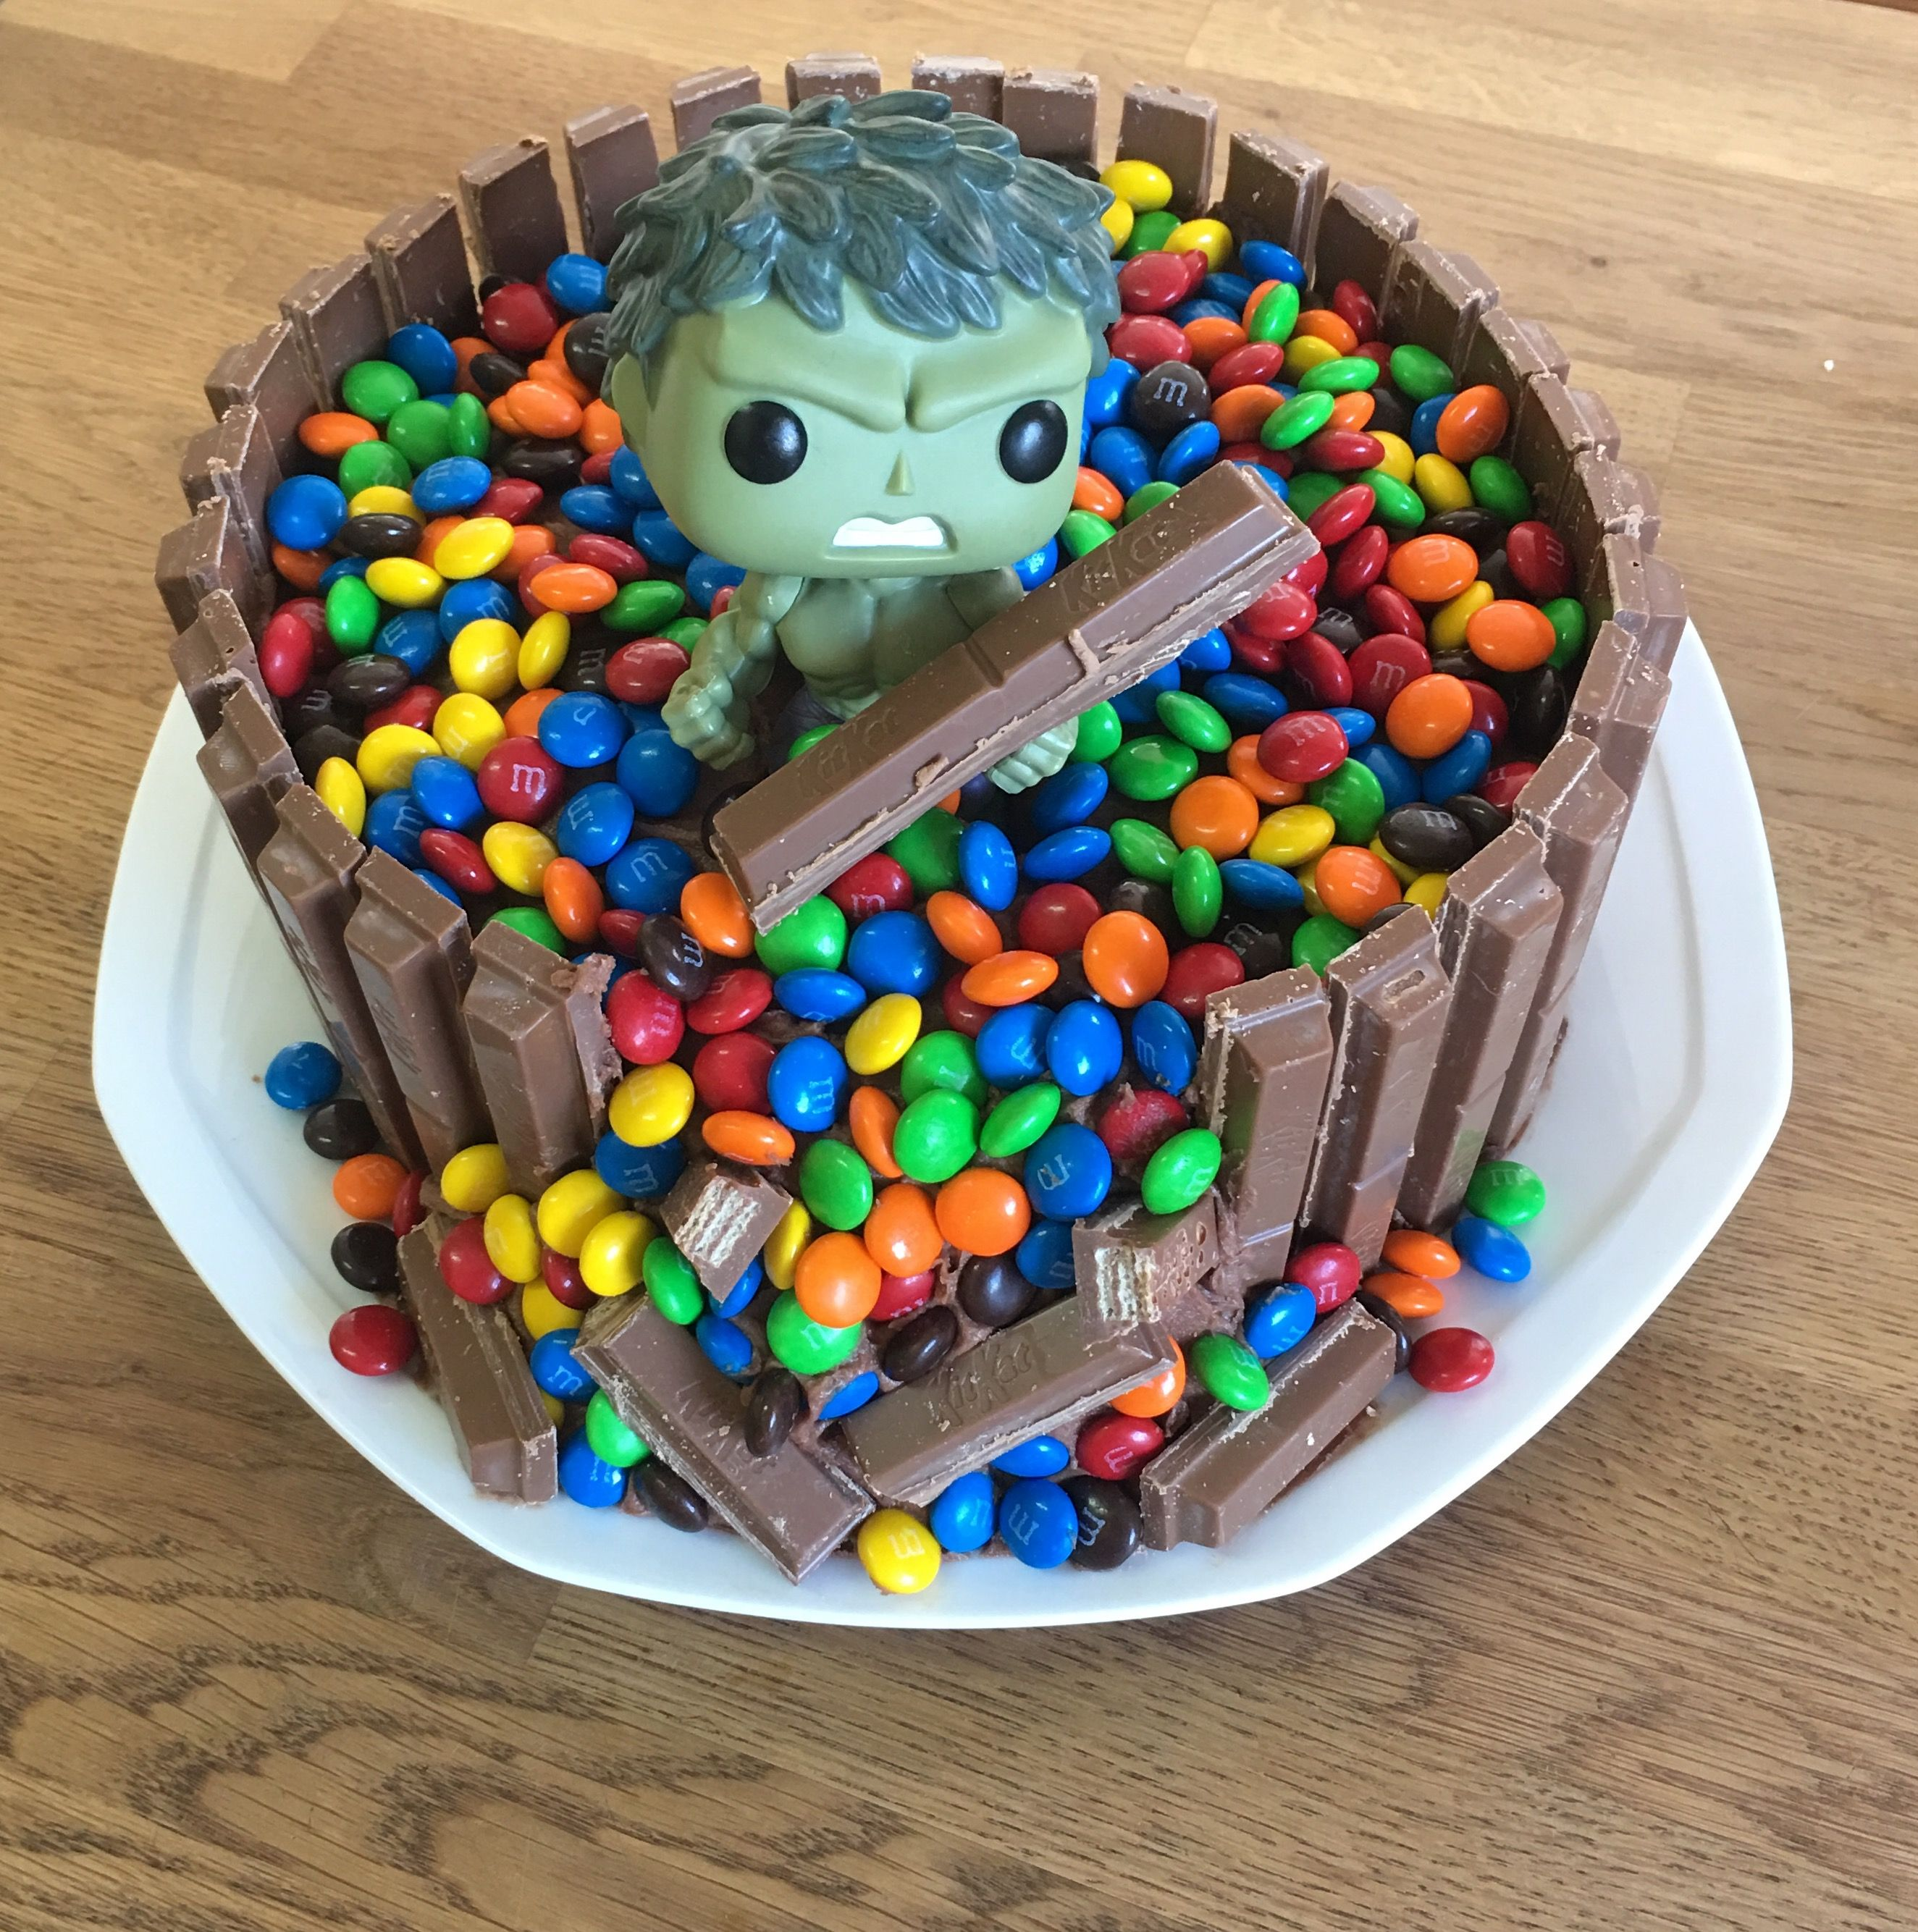 Our Version Of A Hulk Birthday Cake For Our 9 Year Old Boy He